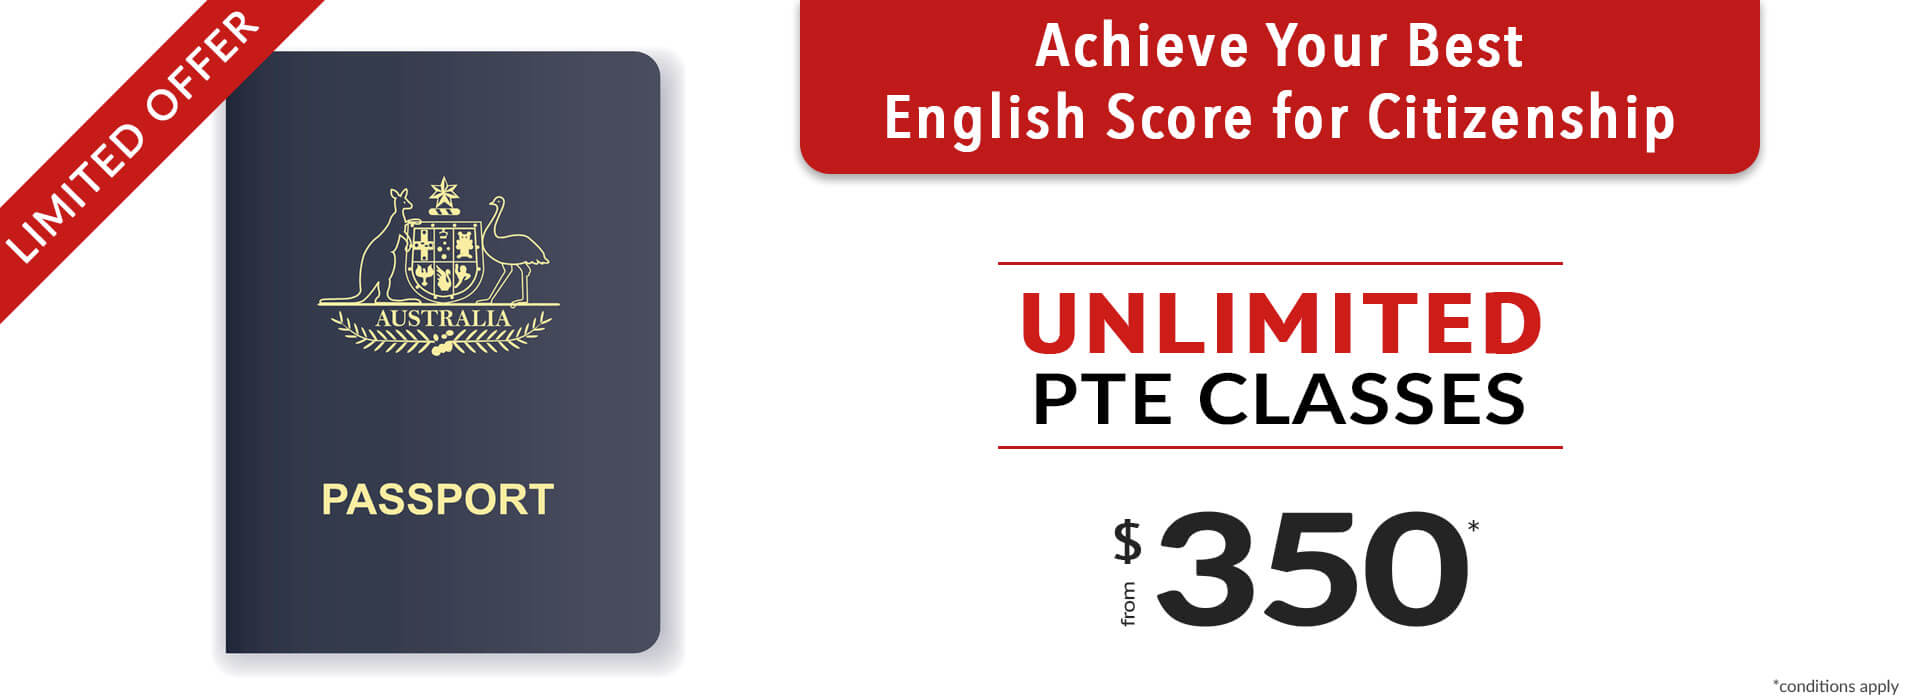 english test for citizenship. unlimited pte course from $350. sydney pte institute